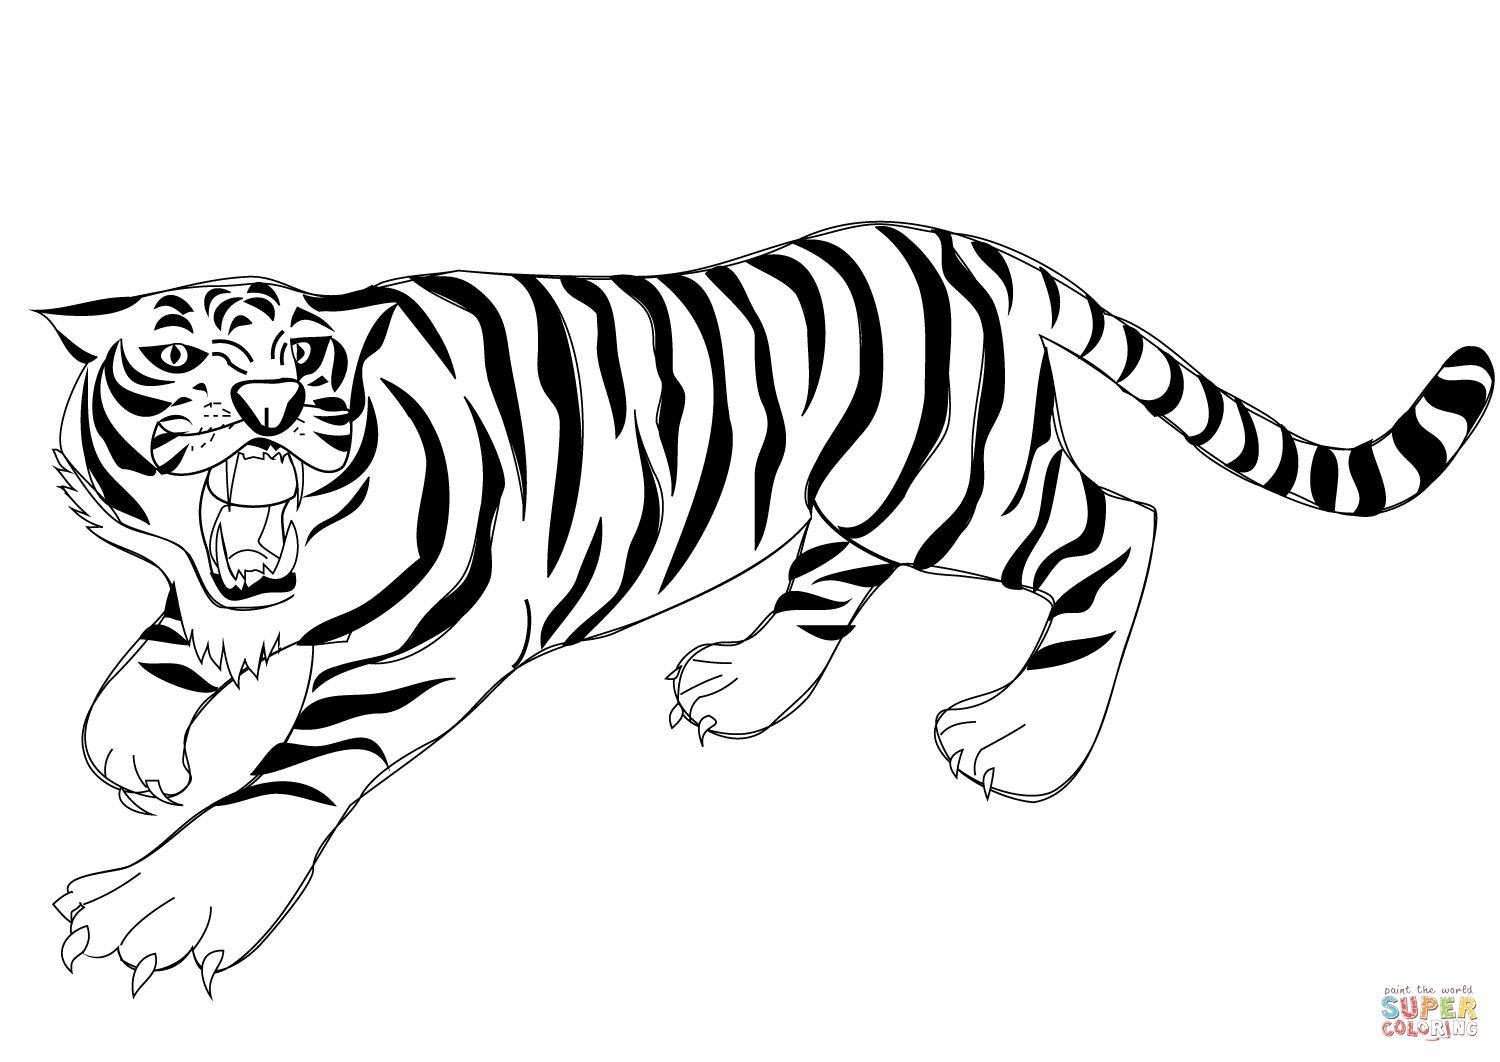 Tiiger coloring #3, Download drawings